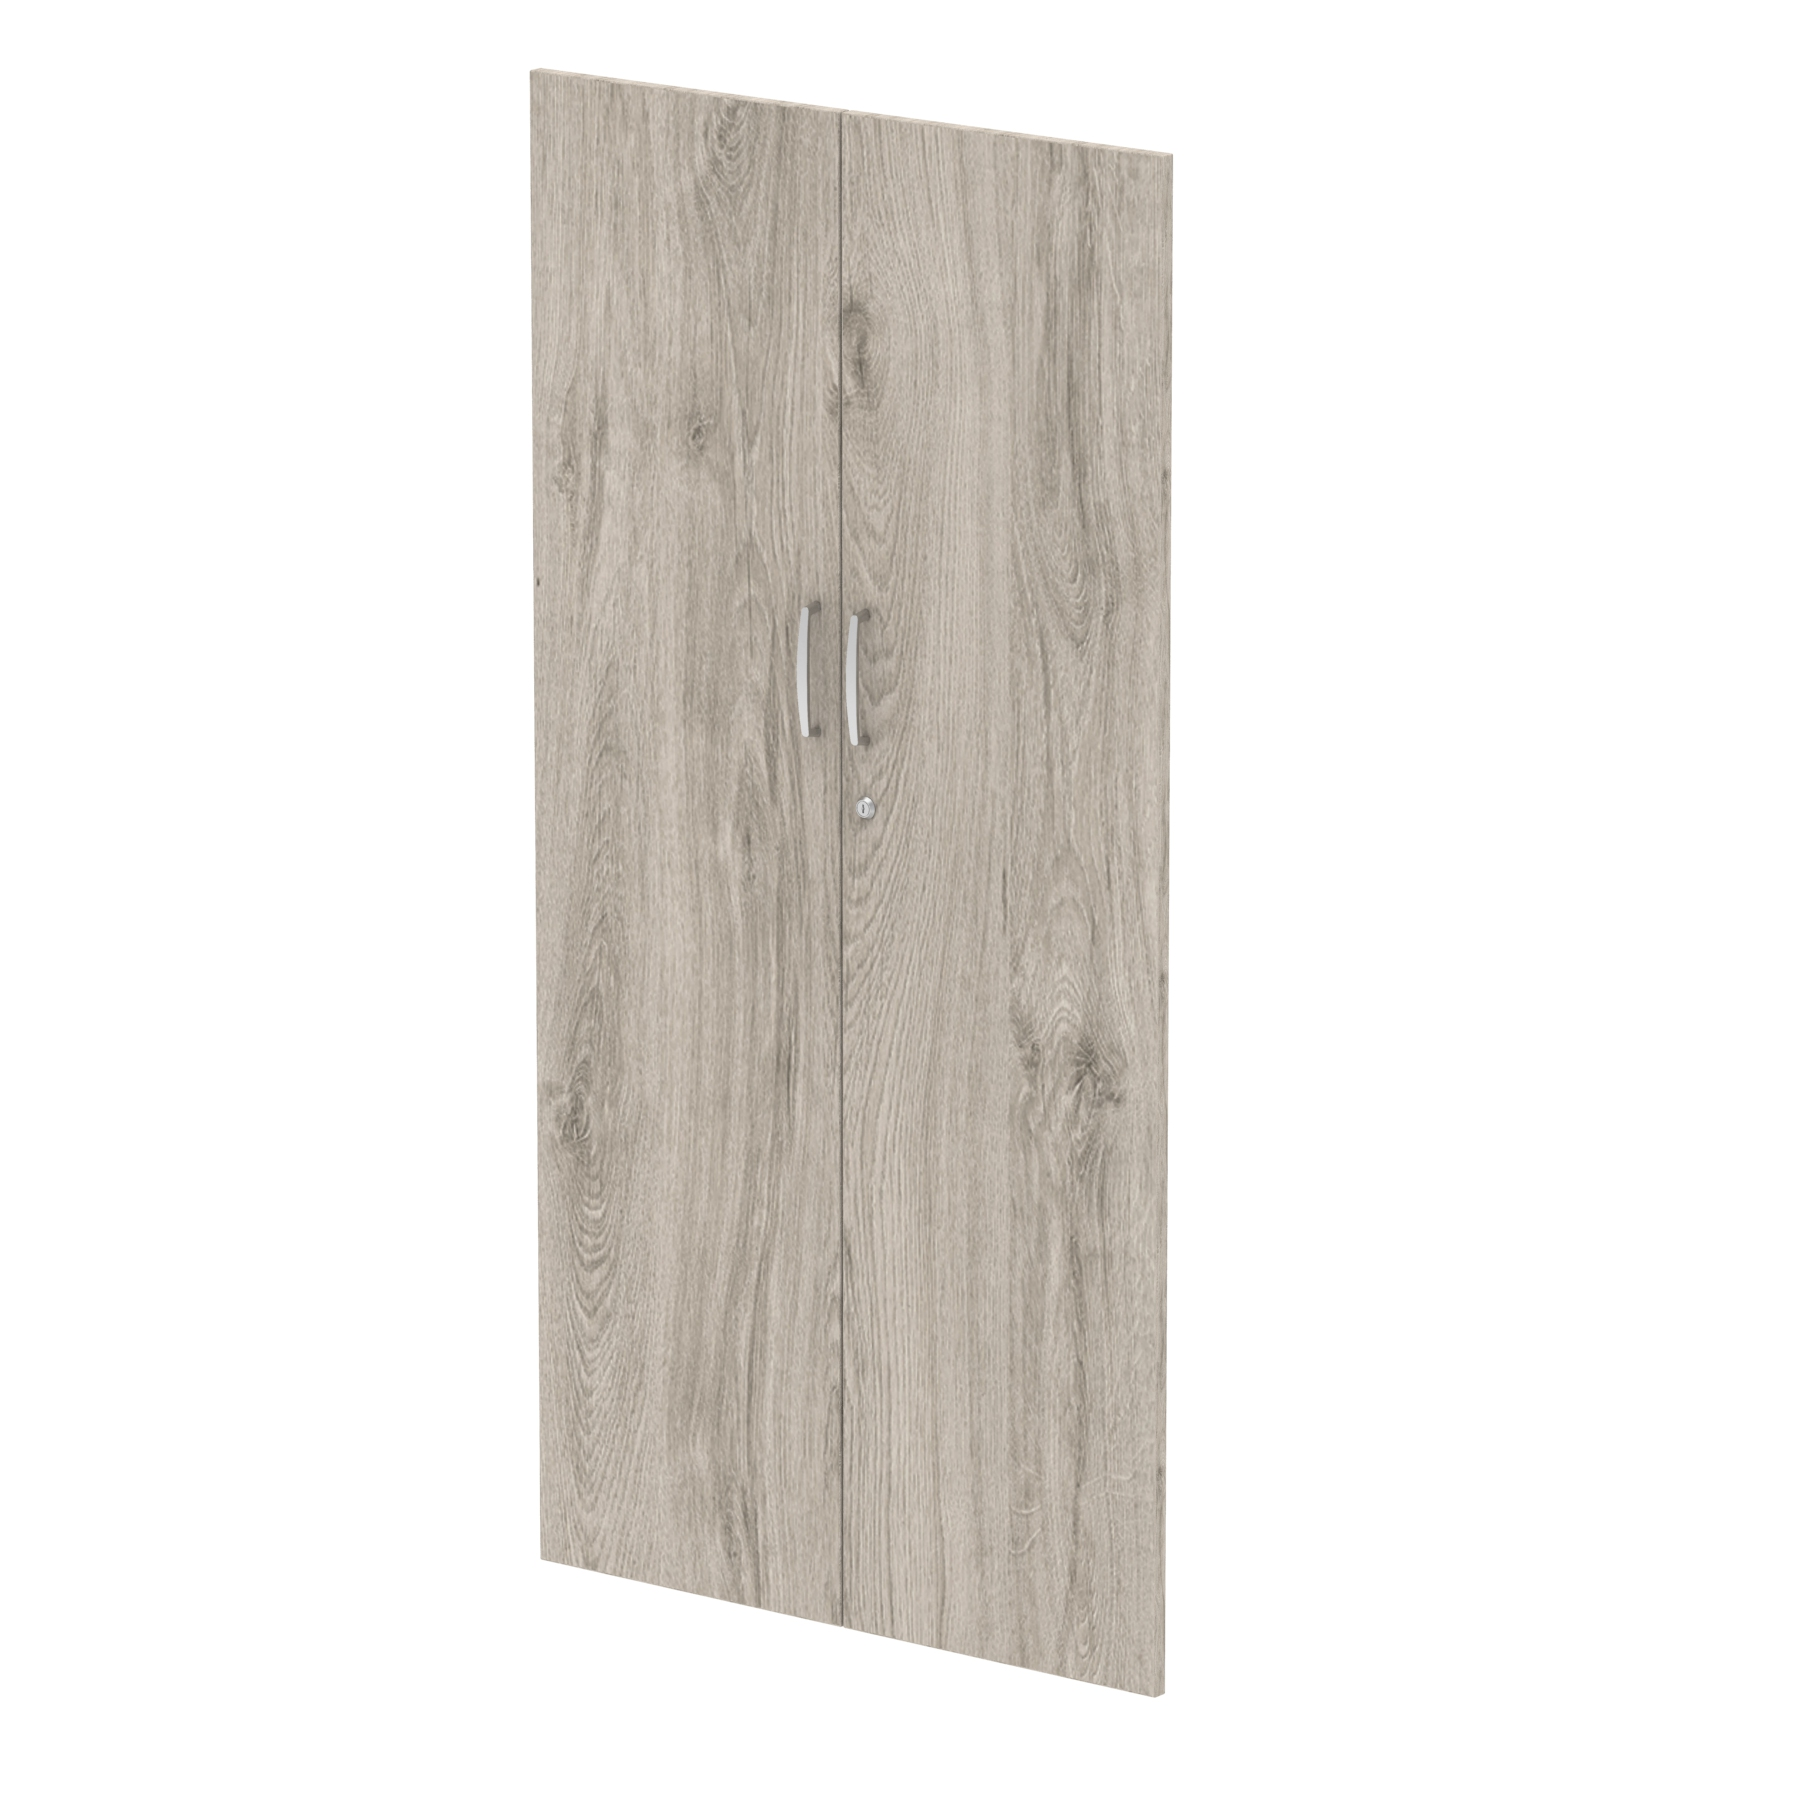 Trexus Door Pack For 1600mm High Cupboard Grey Oak Ref I003233